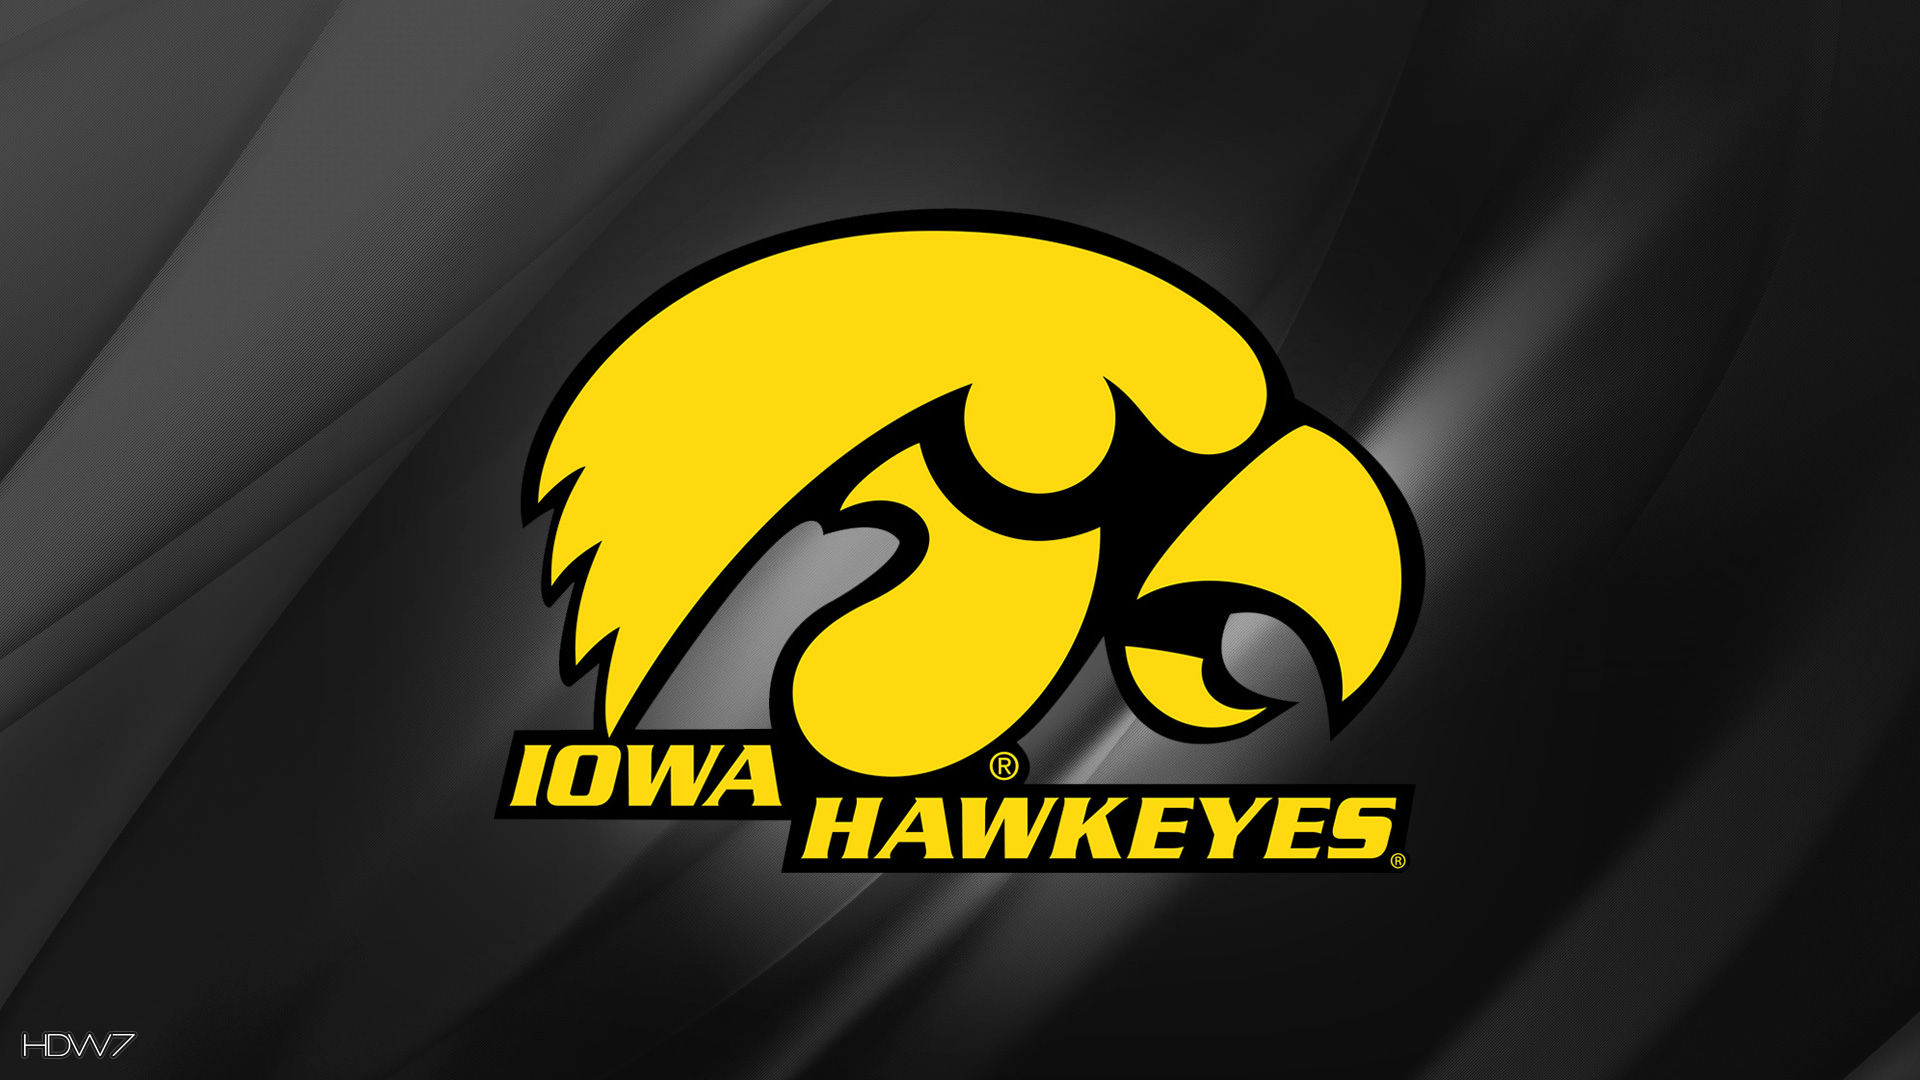 iowa hawkeyes 1920x1080 HD wallpaper gallery  170 9qlb5mgh